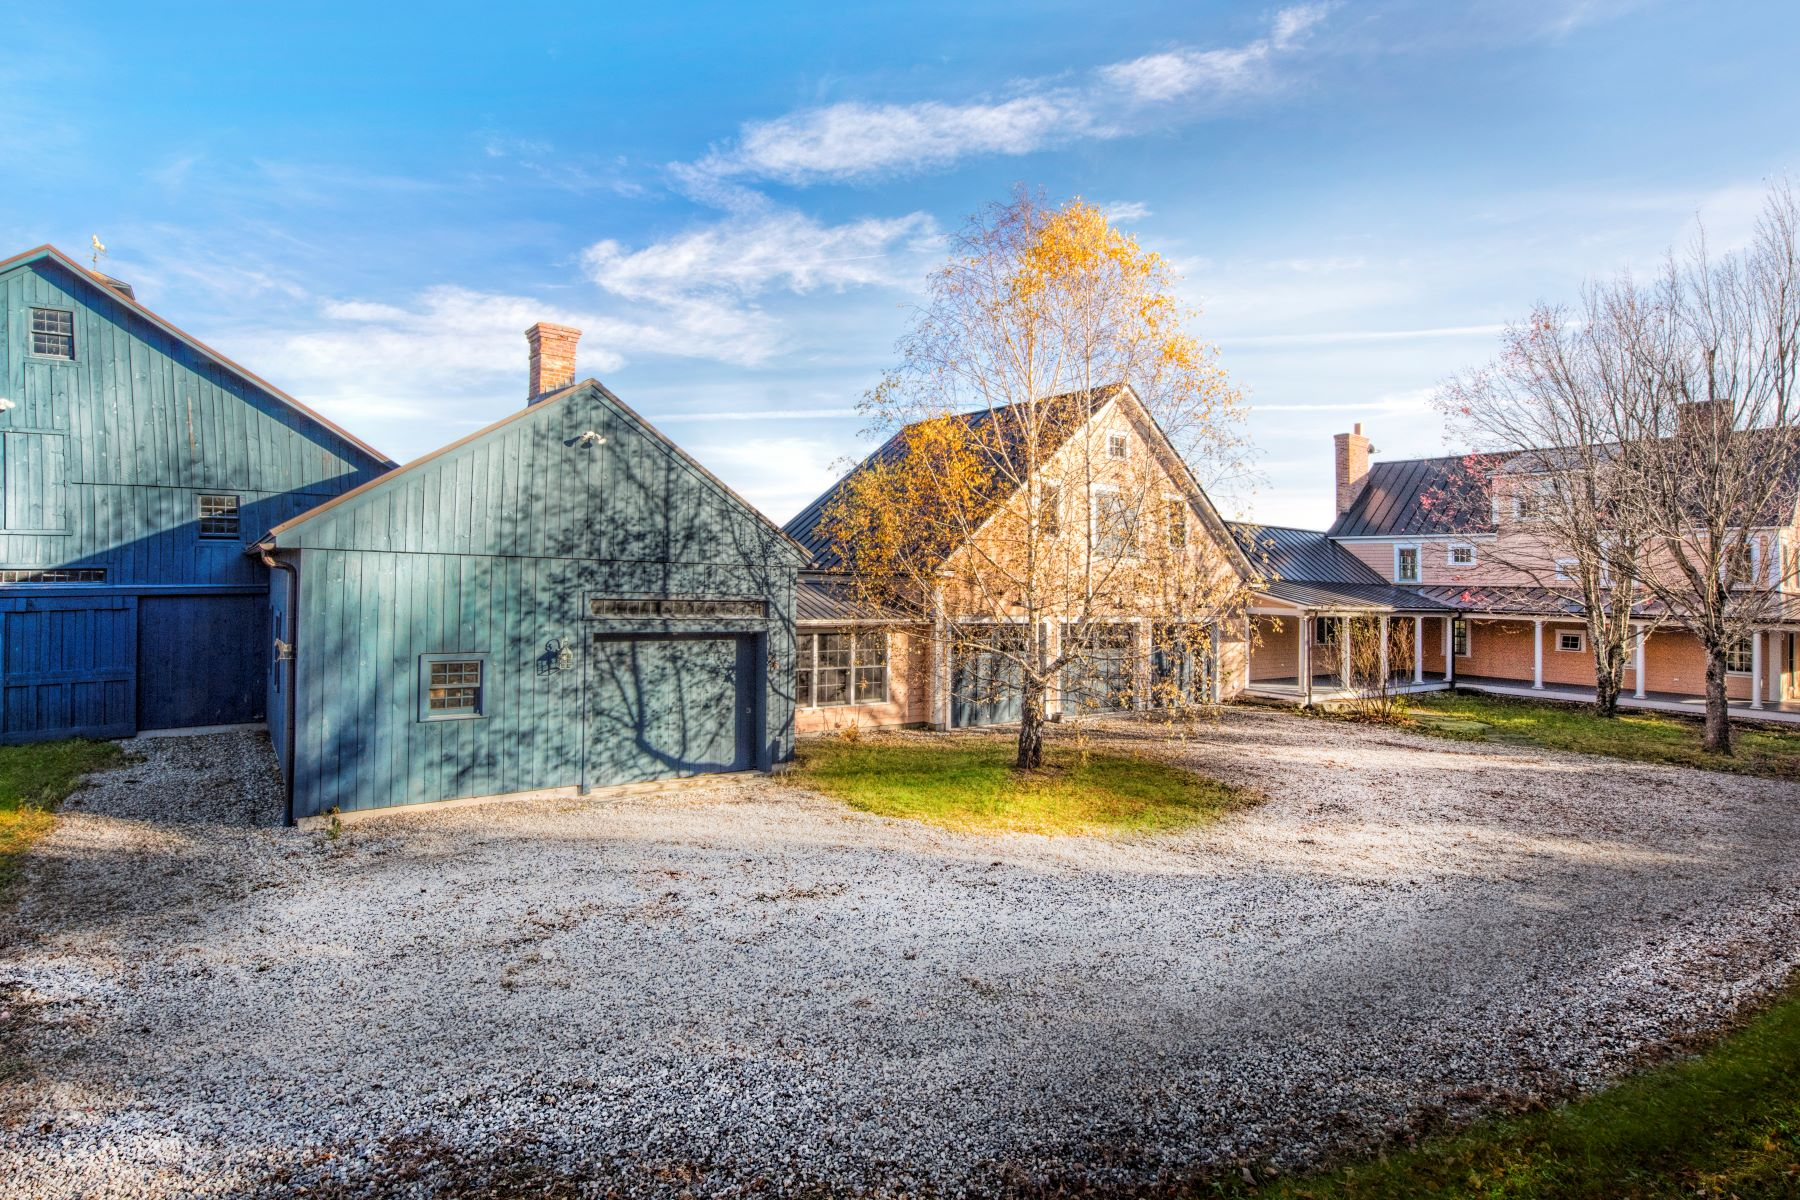 Maison unifamiliale pour l Vente à Outstanding 103 Acre Horse Farm with Many Terrific Features 92 North Rd Chesterfield, Massachusetts 01012 États-Unis